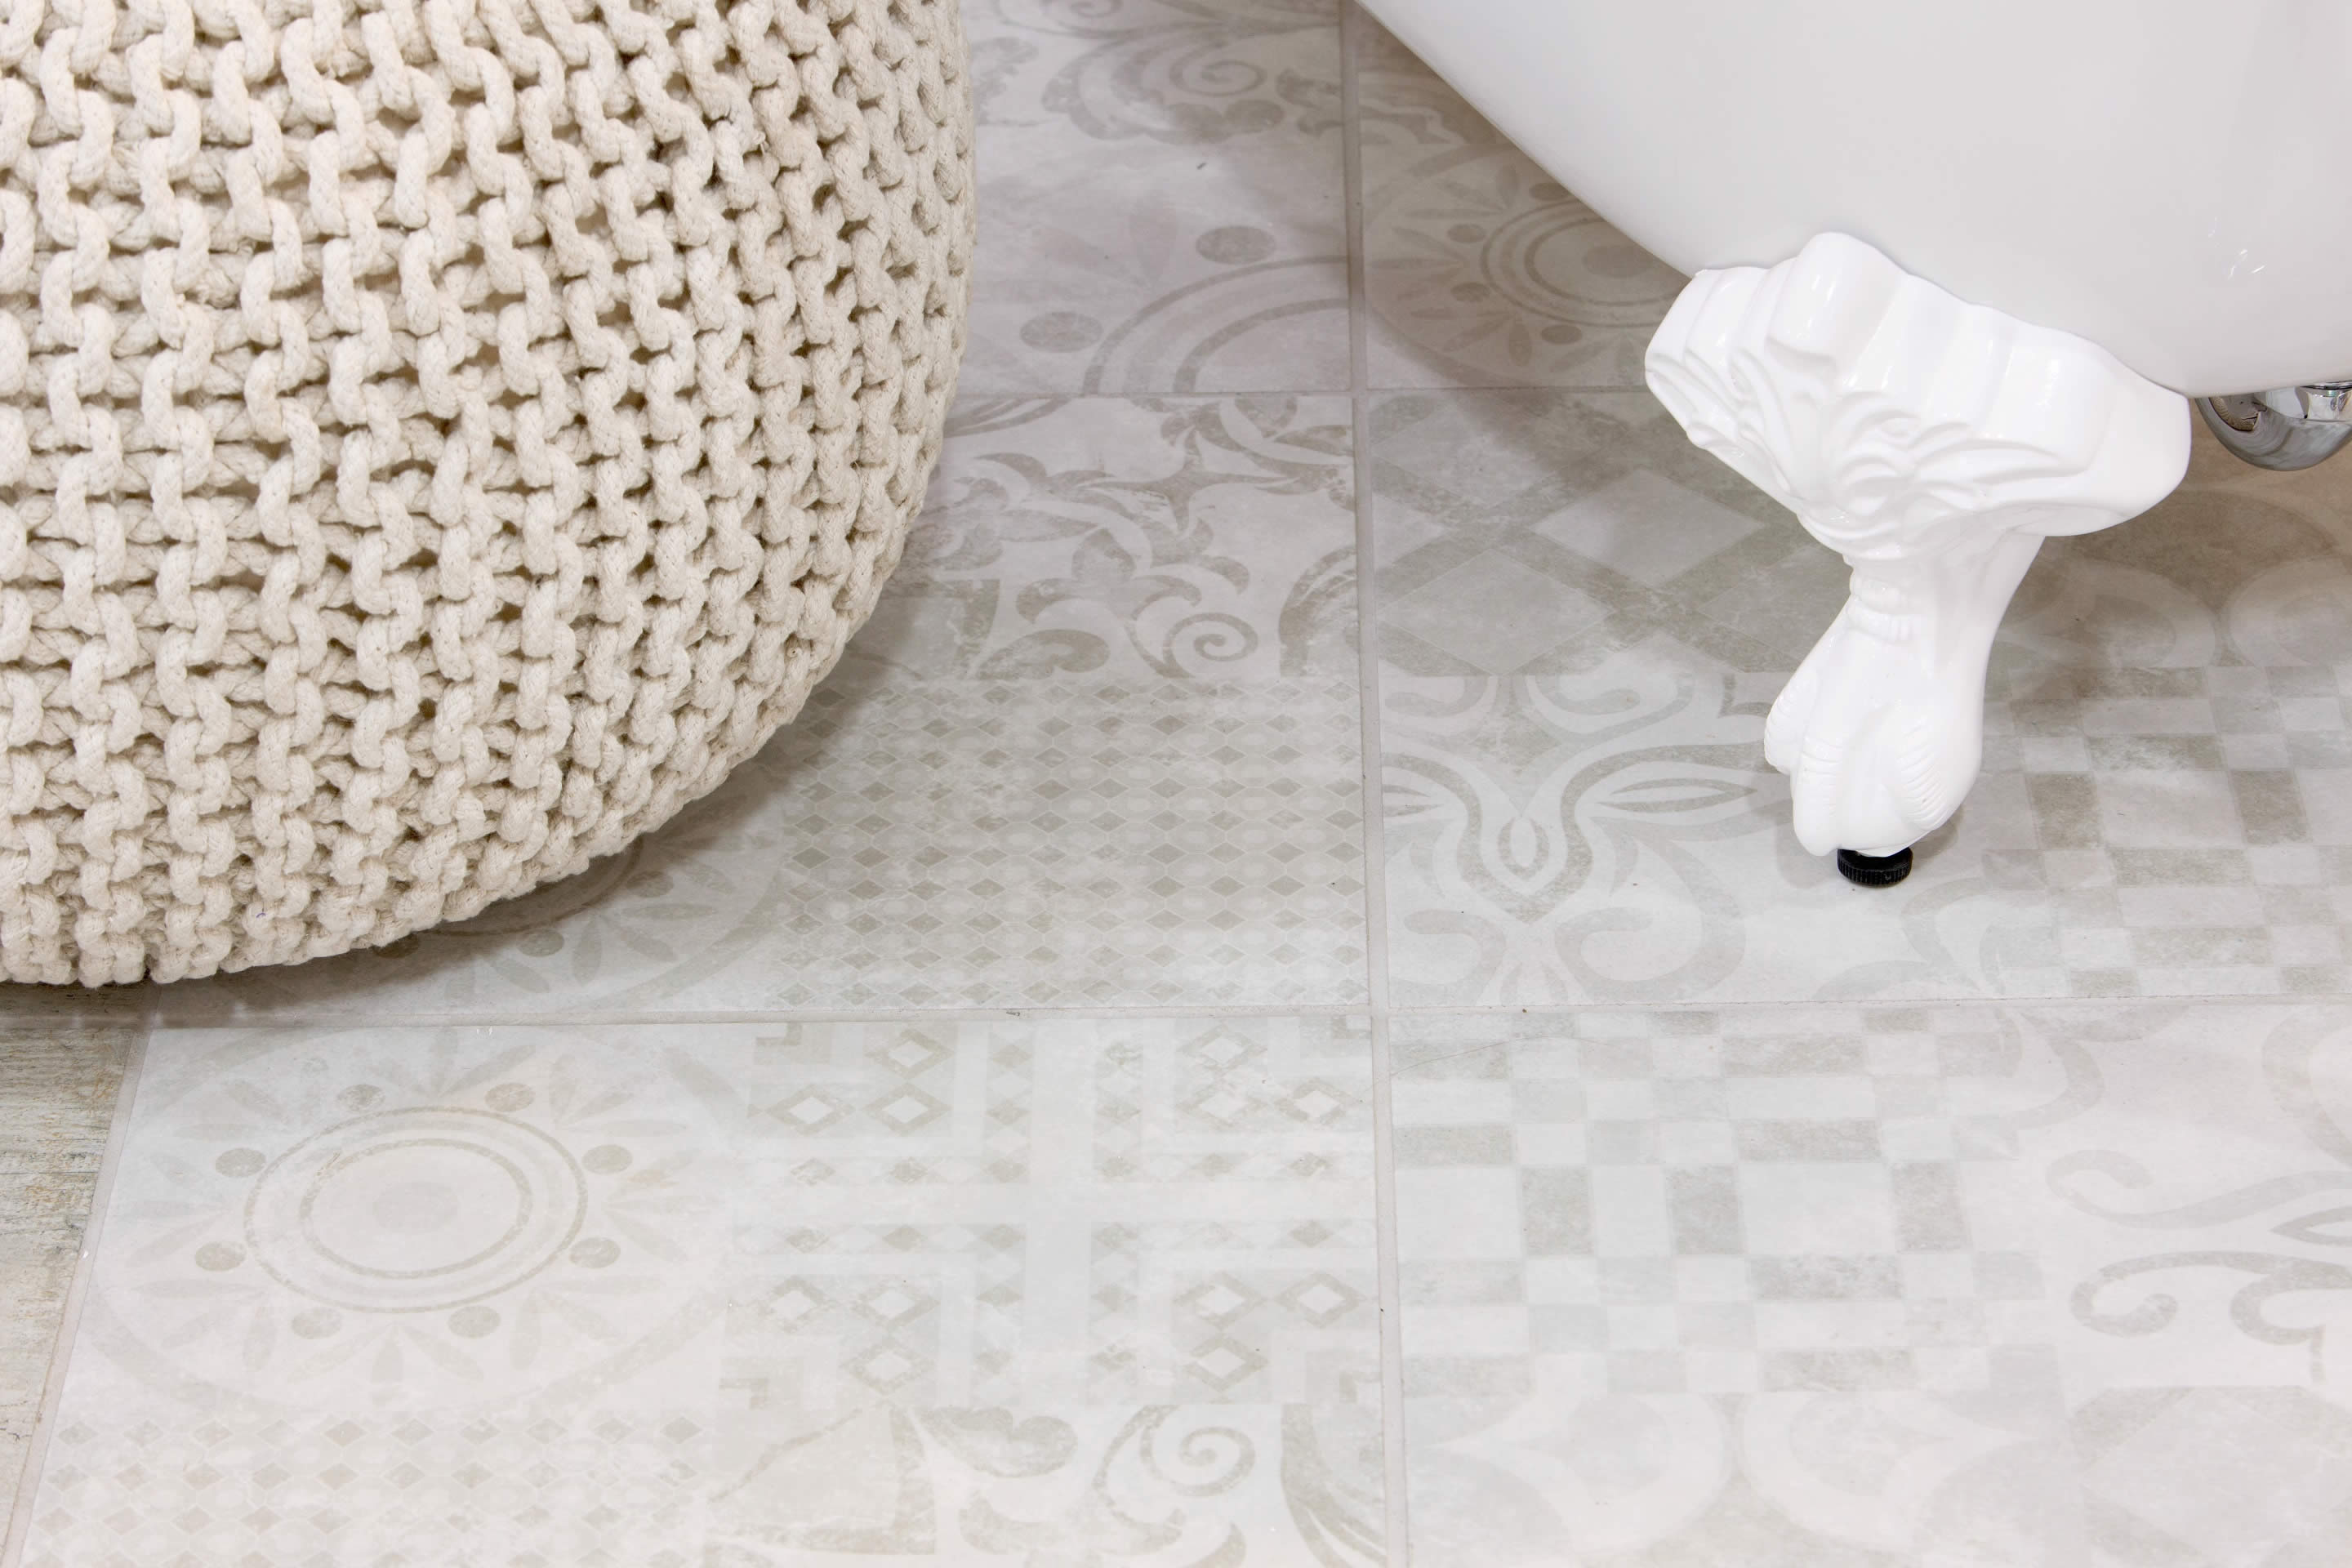 Johnson Tiles forecasts bold patterns for floor and wall tiles